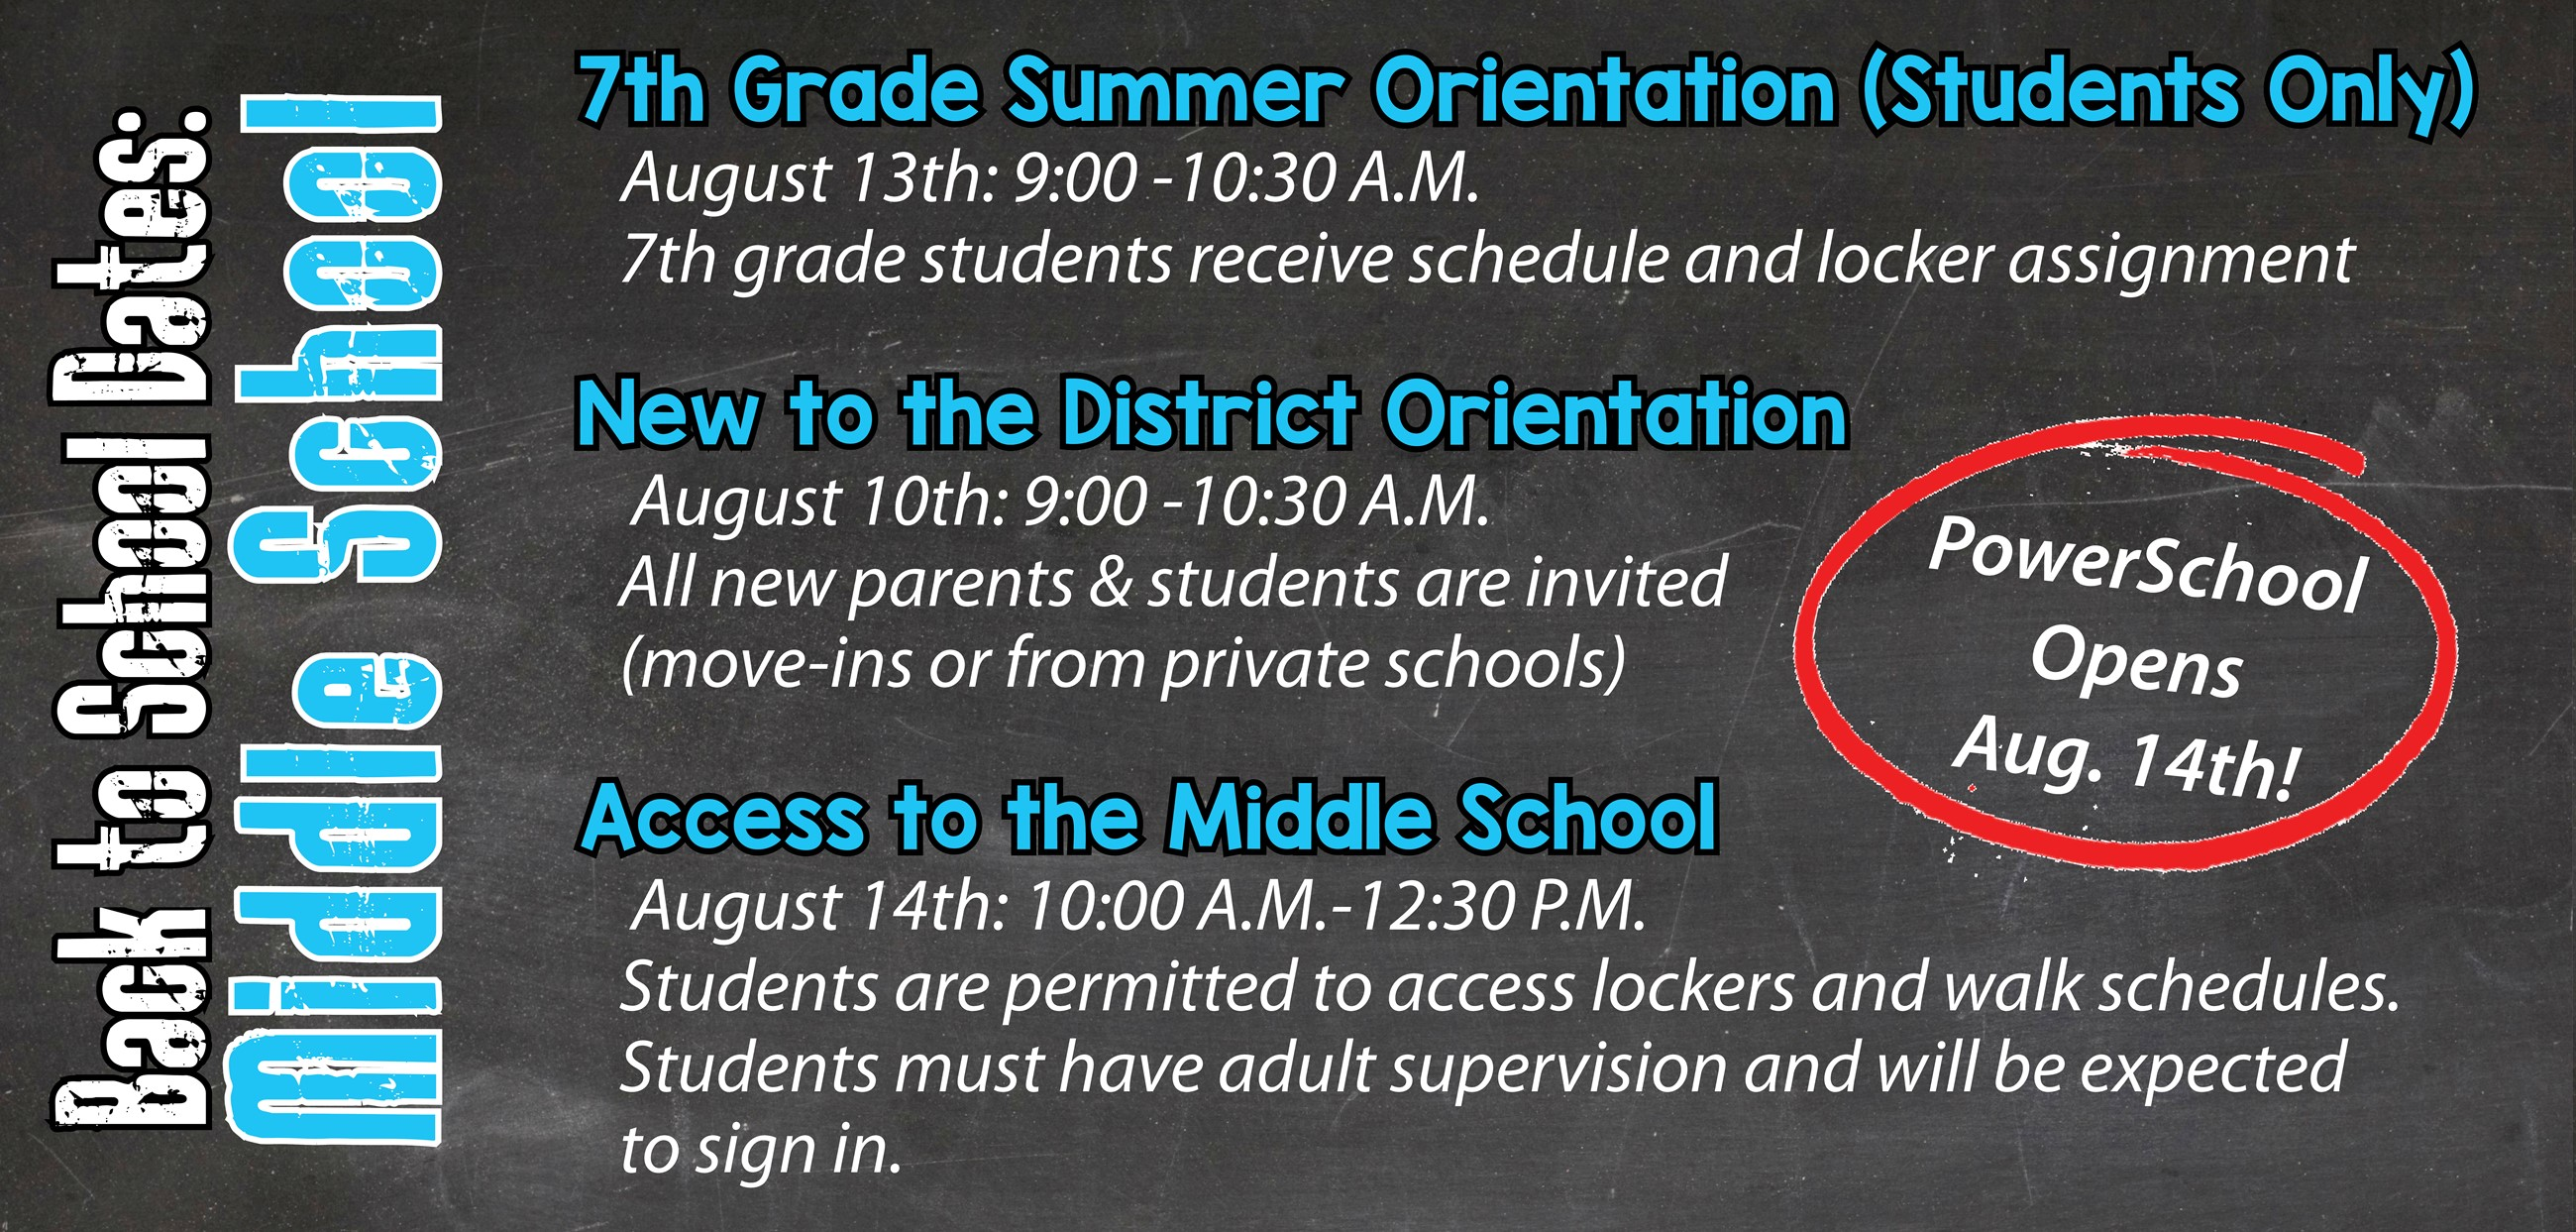 Back to School PTMS Info